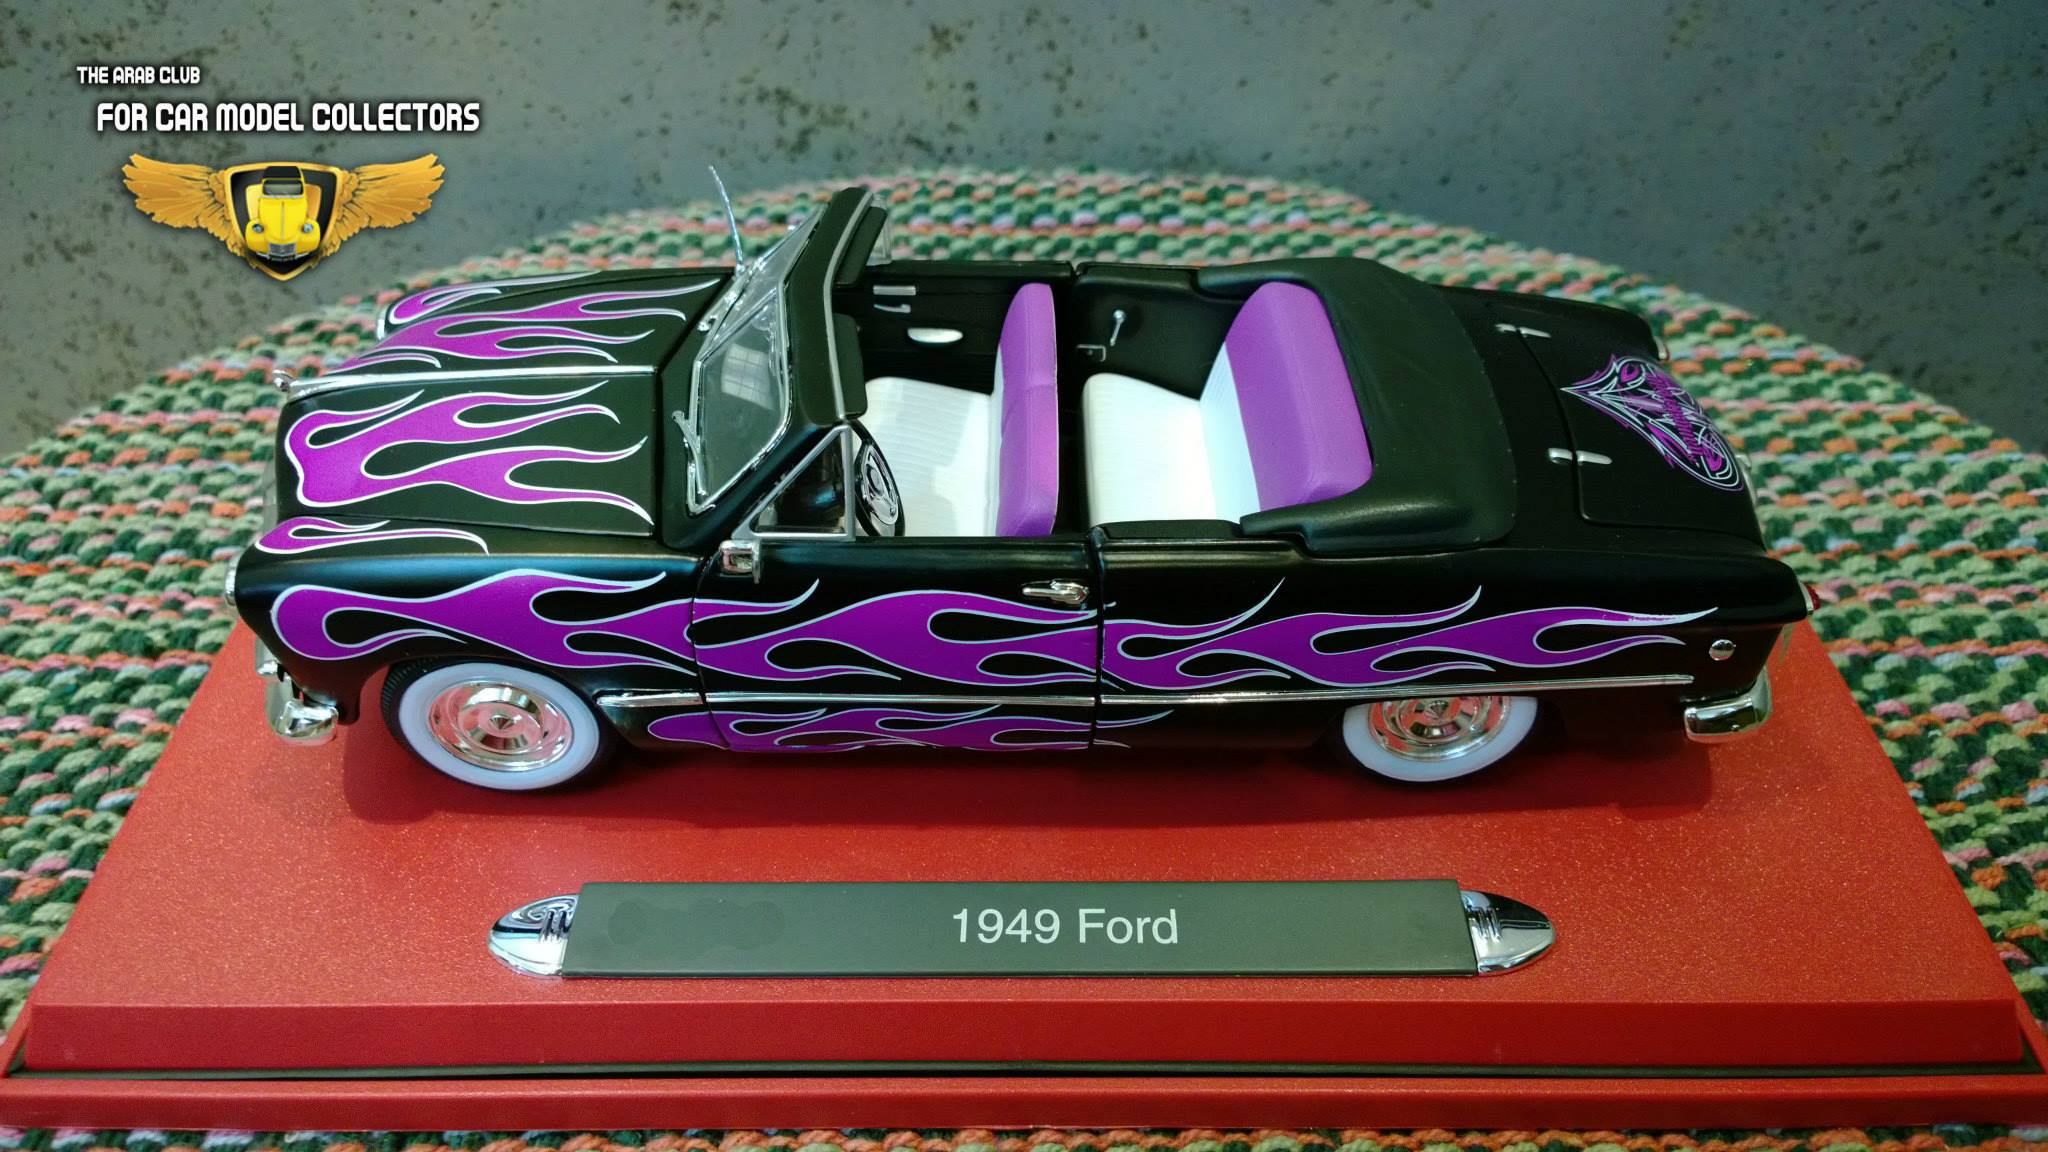 Ford 1949 Customized Convertible